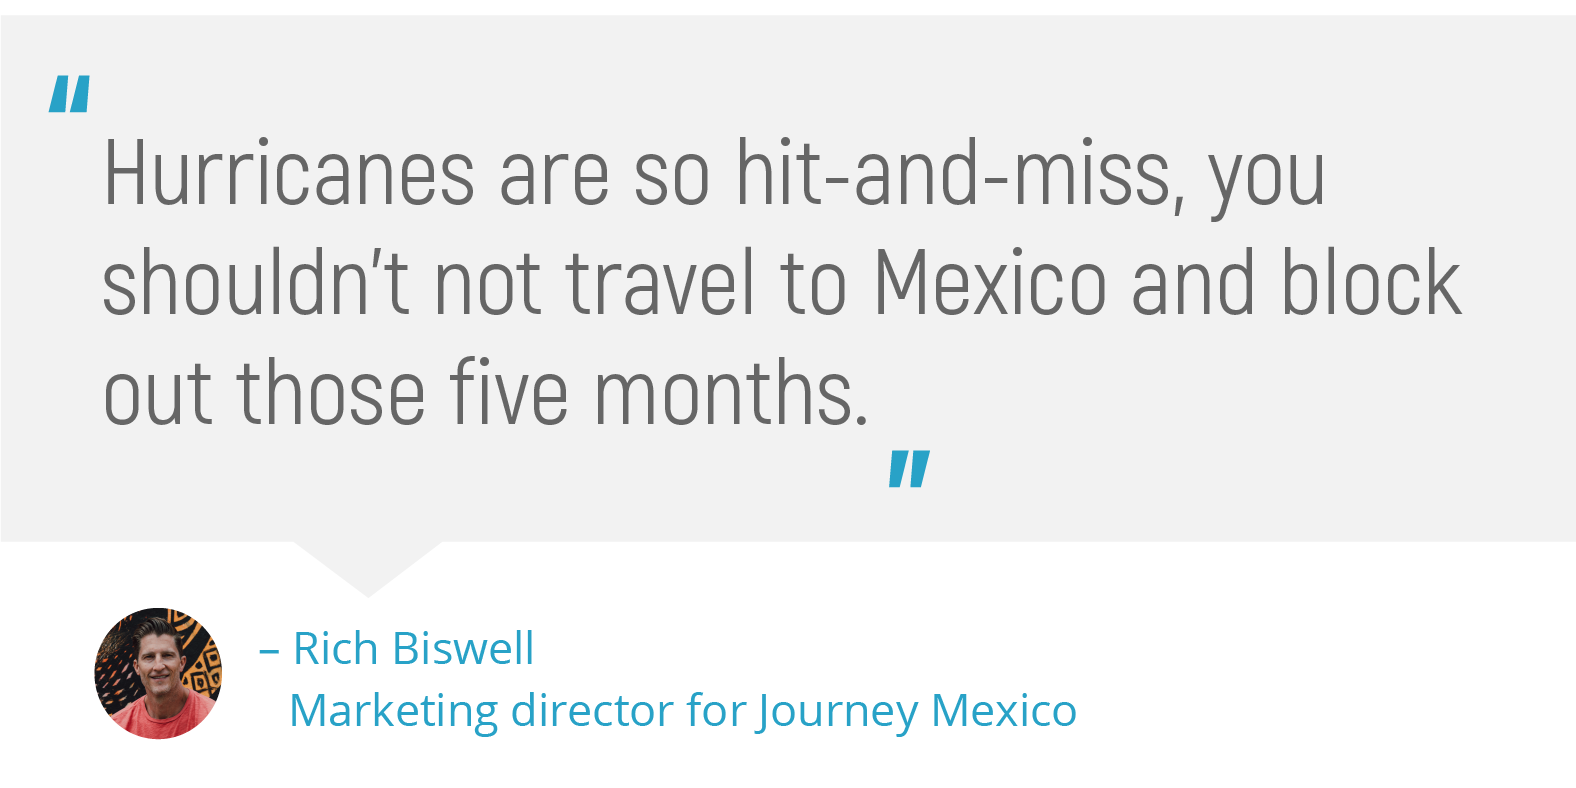 Pull quote from Rich Biswell on hurricanes and Mexico travel